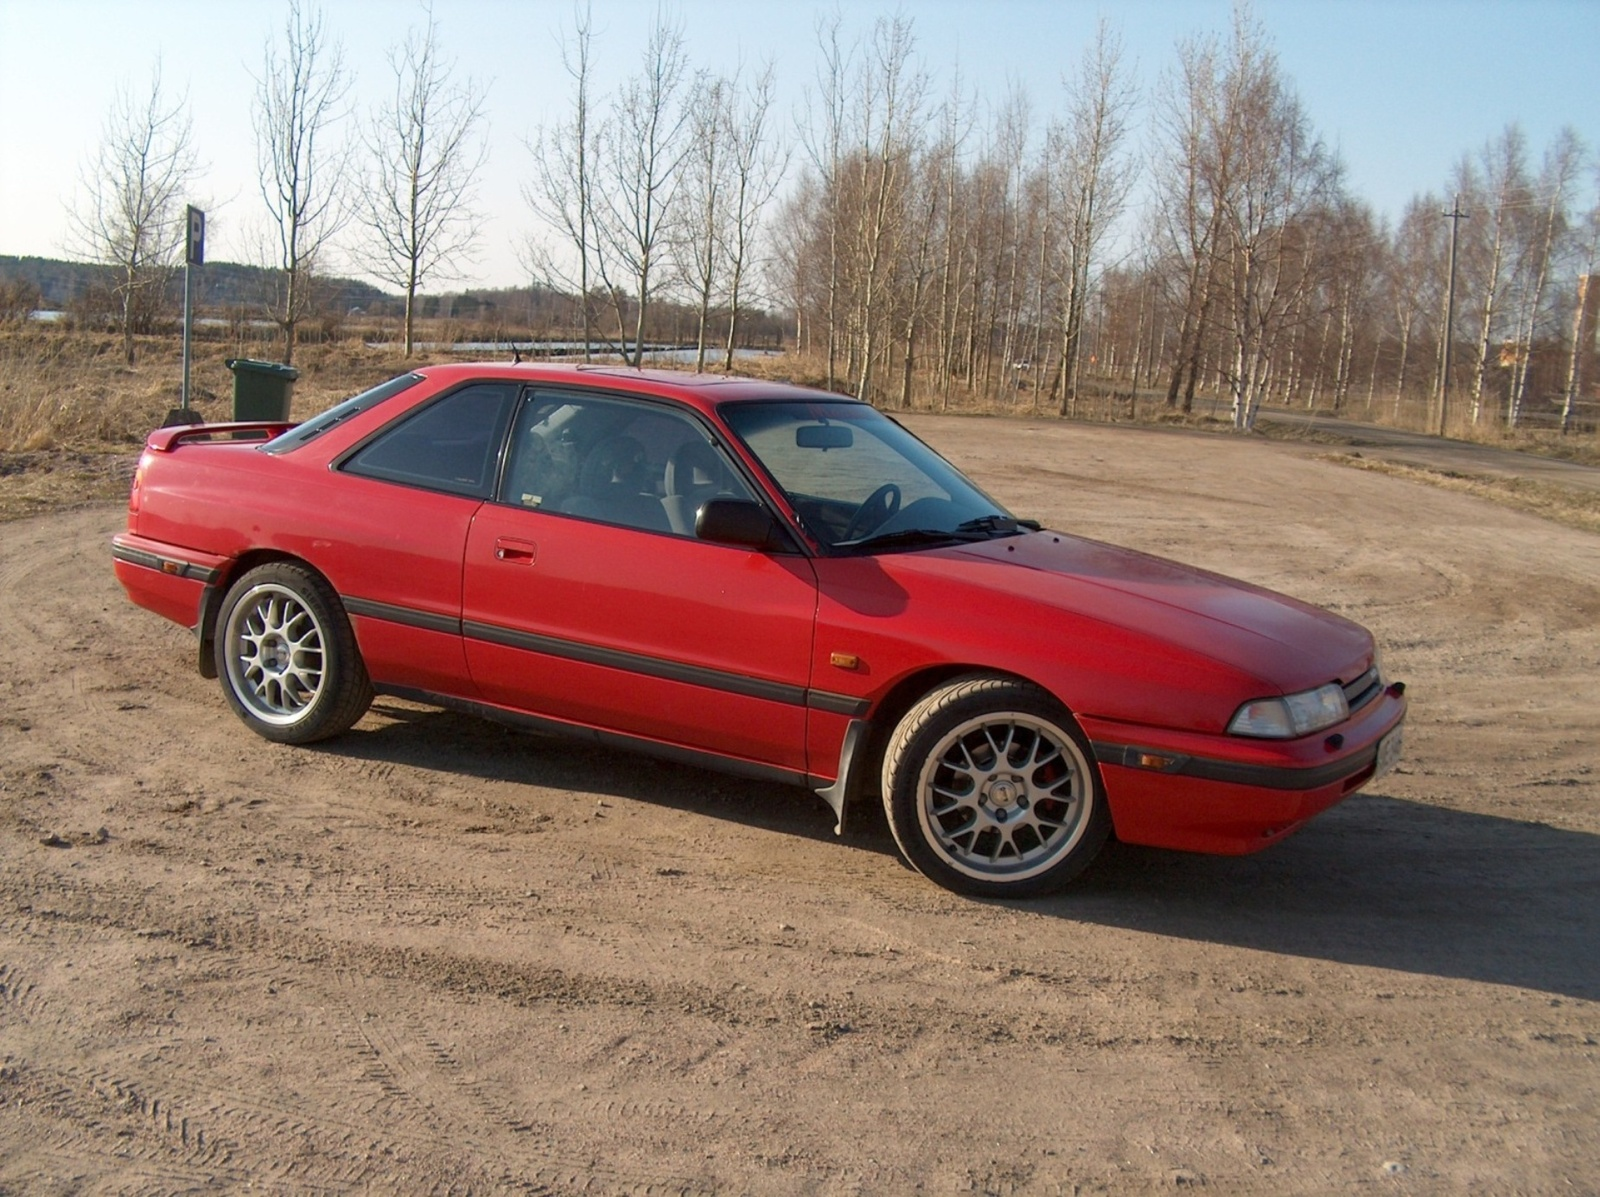 1991 Mazda MX-6 Coupe 2-door